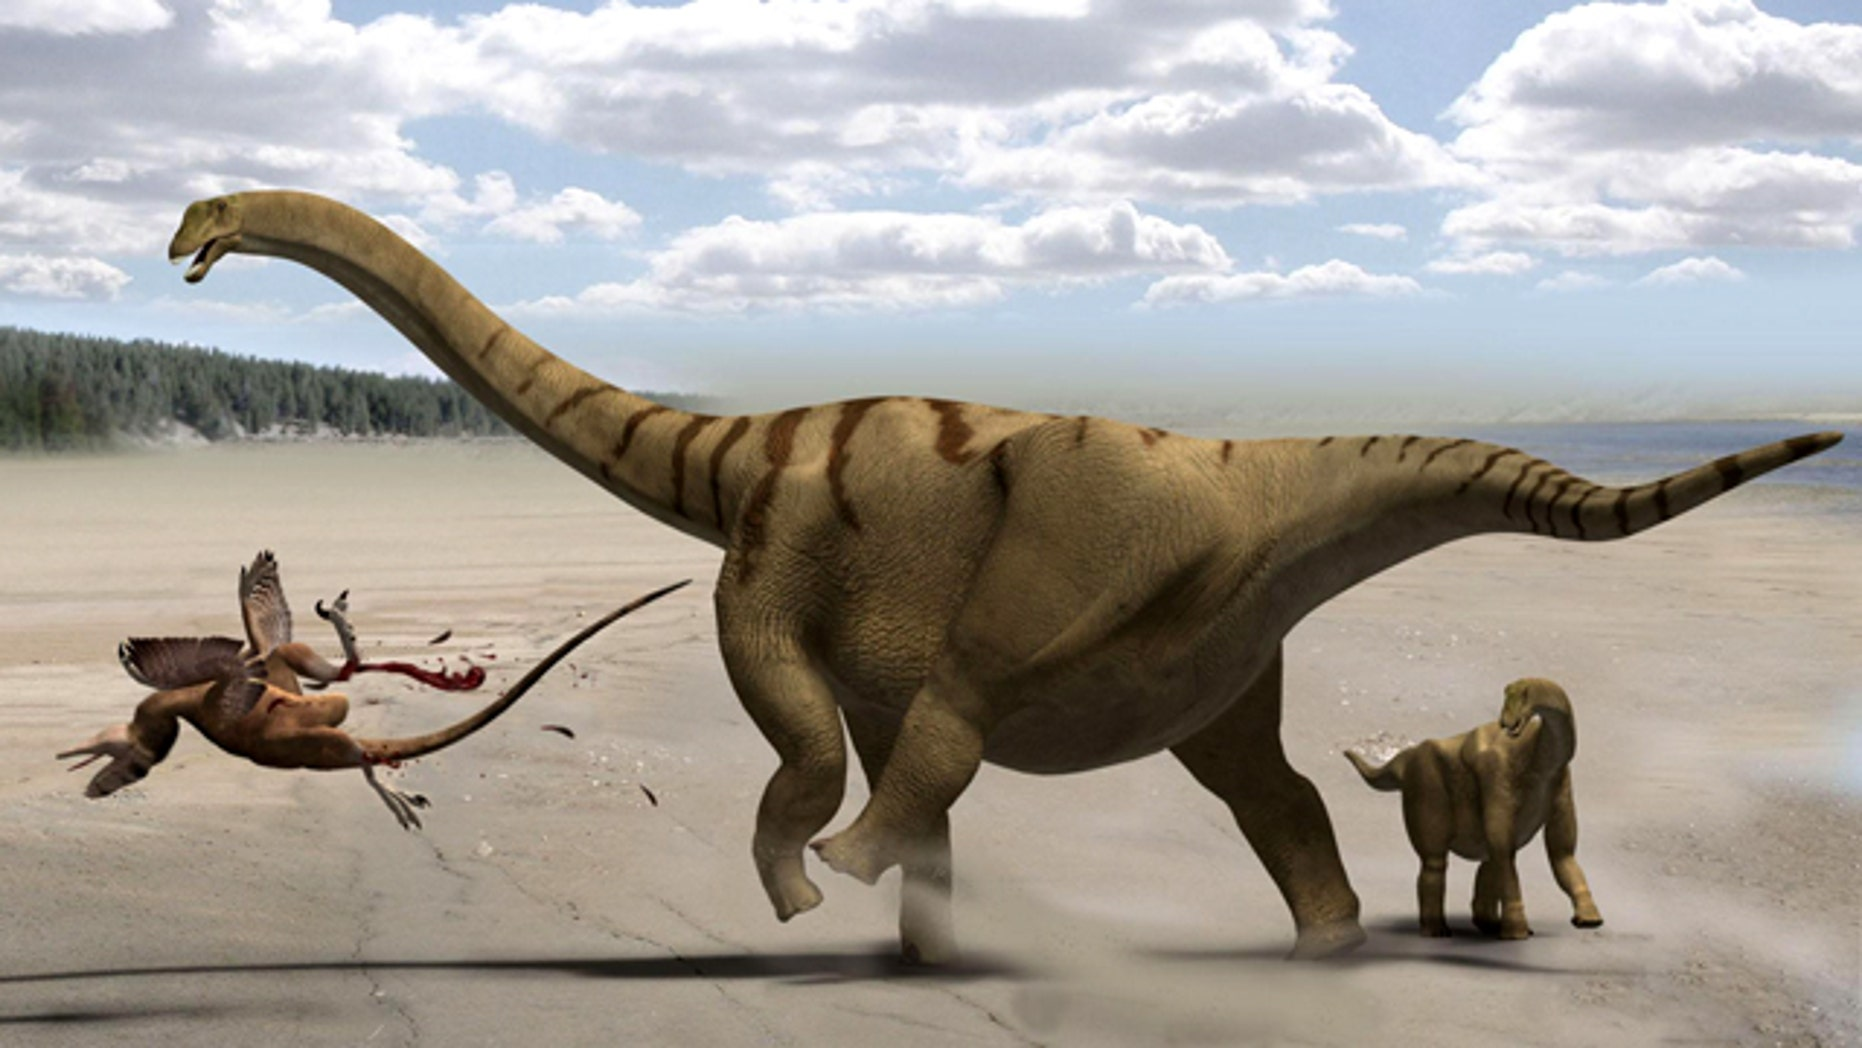 This life restoration shows the adult Brontomerus as a mother, protecting her baby from a predator by using her powerful thigh muscles to deliver a devastating kick.